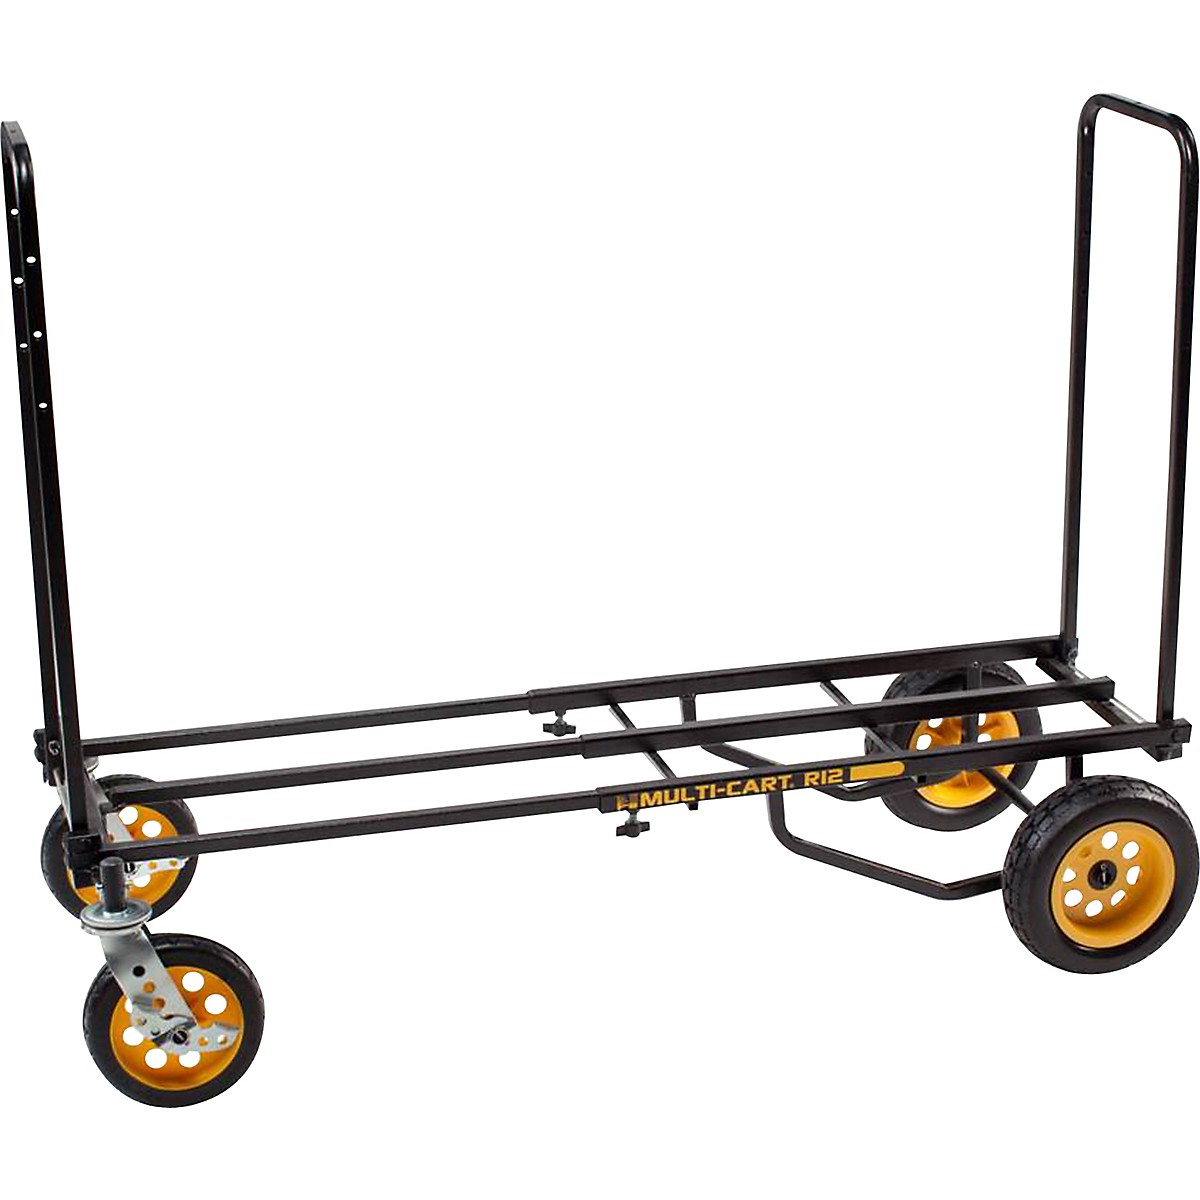 Rock N Roller R12RT Multi-Cart 8-in-1 Equipment Transporter Cart